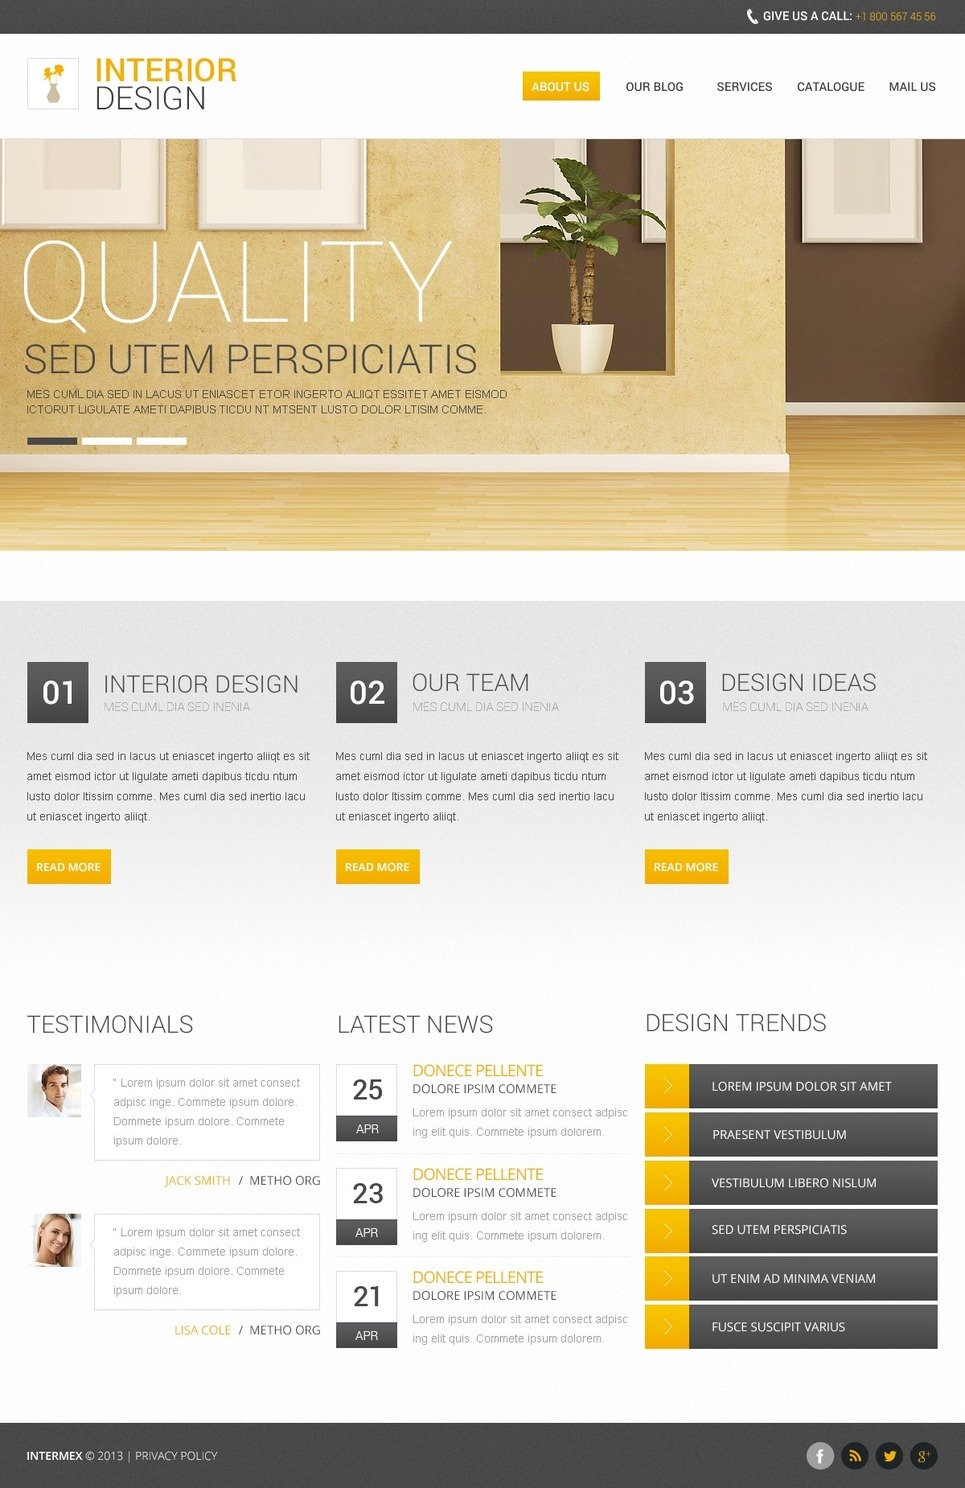 Pretty 1 Year Experienced Software Developer Resume Sample Tall 12 Month Budget Template Rectangular 2 Page Resume 2016 2 Panel Brochure Template Old 2015 Calendars Template Green2015 Office Calendar Template Free Drupal 7 Templates   Vosvete